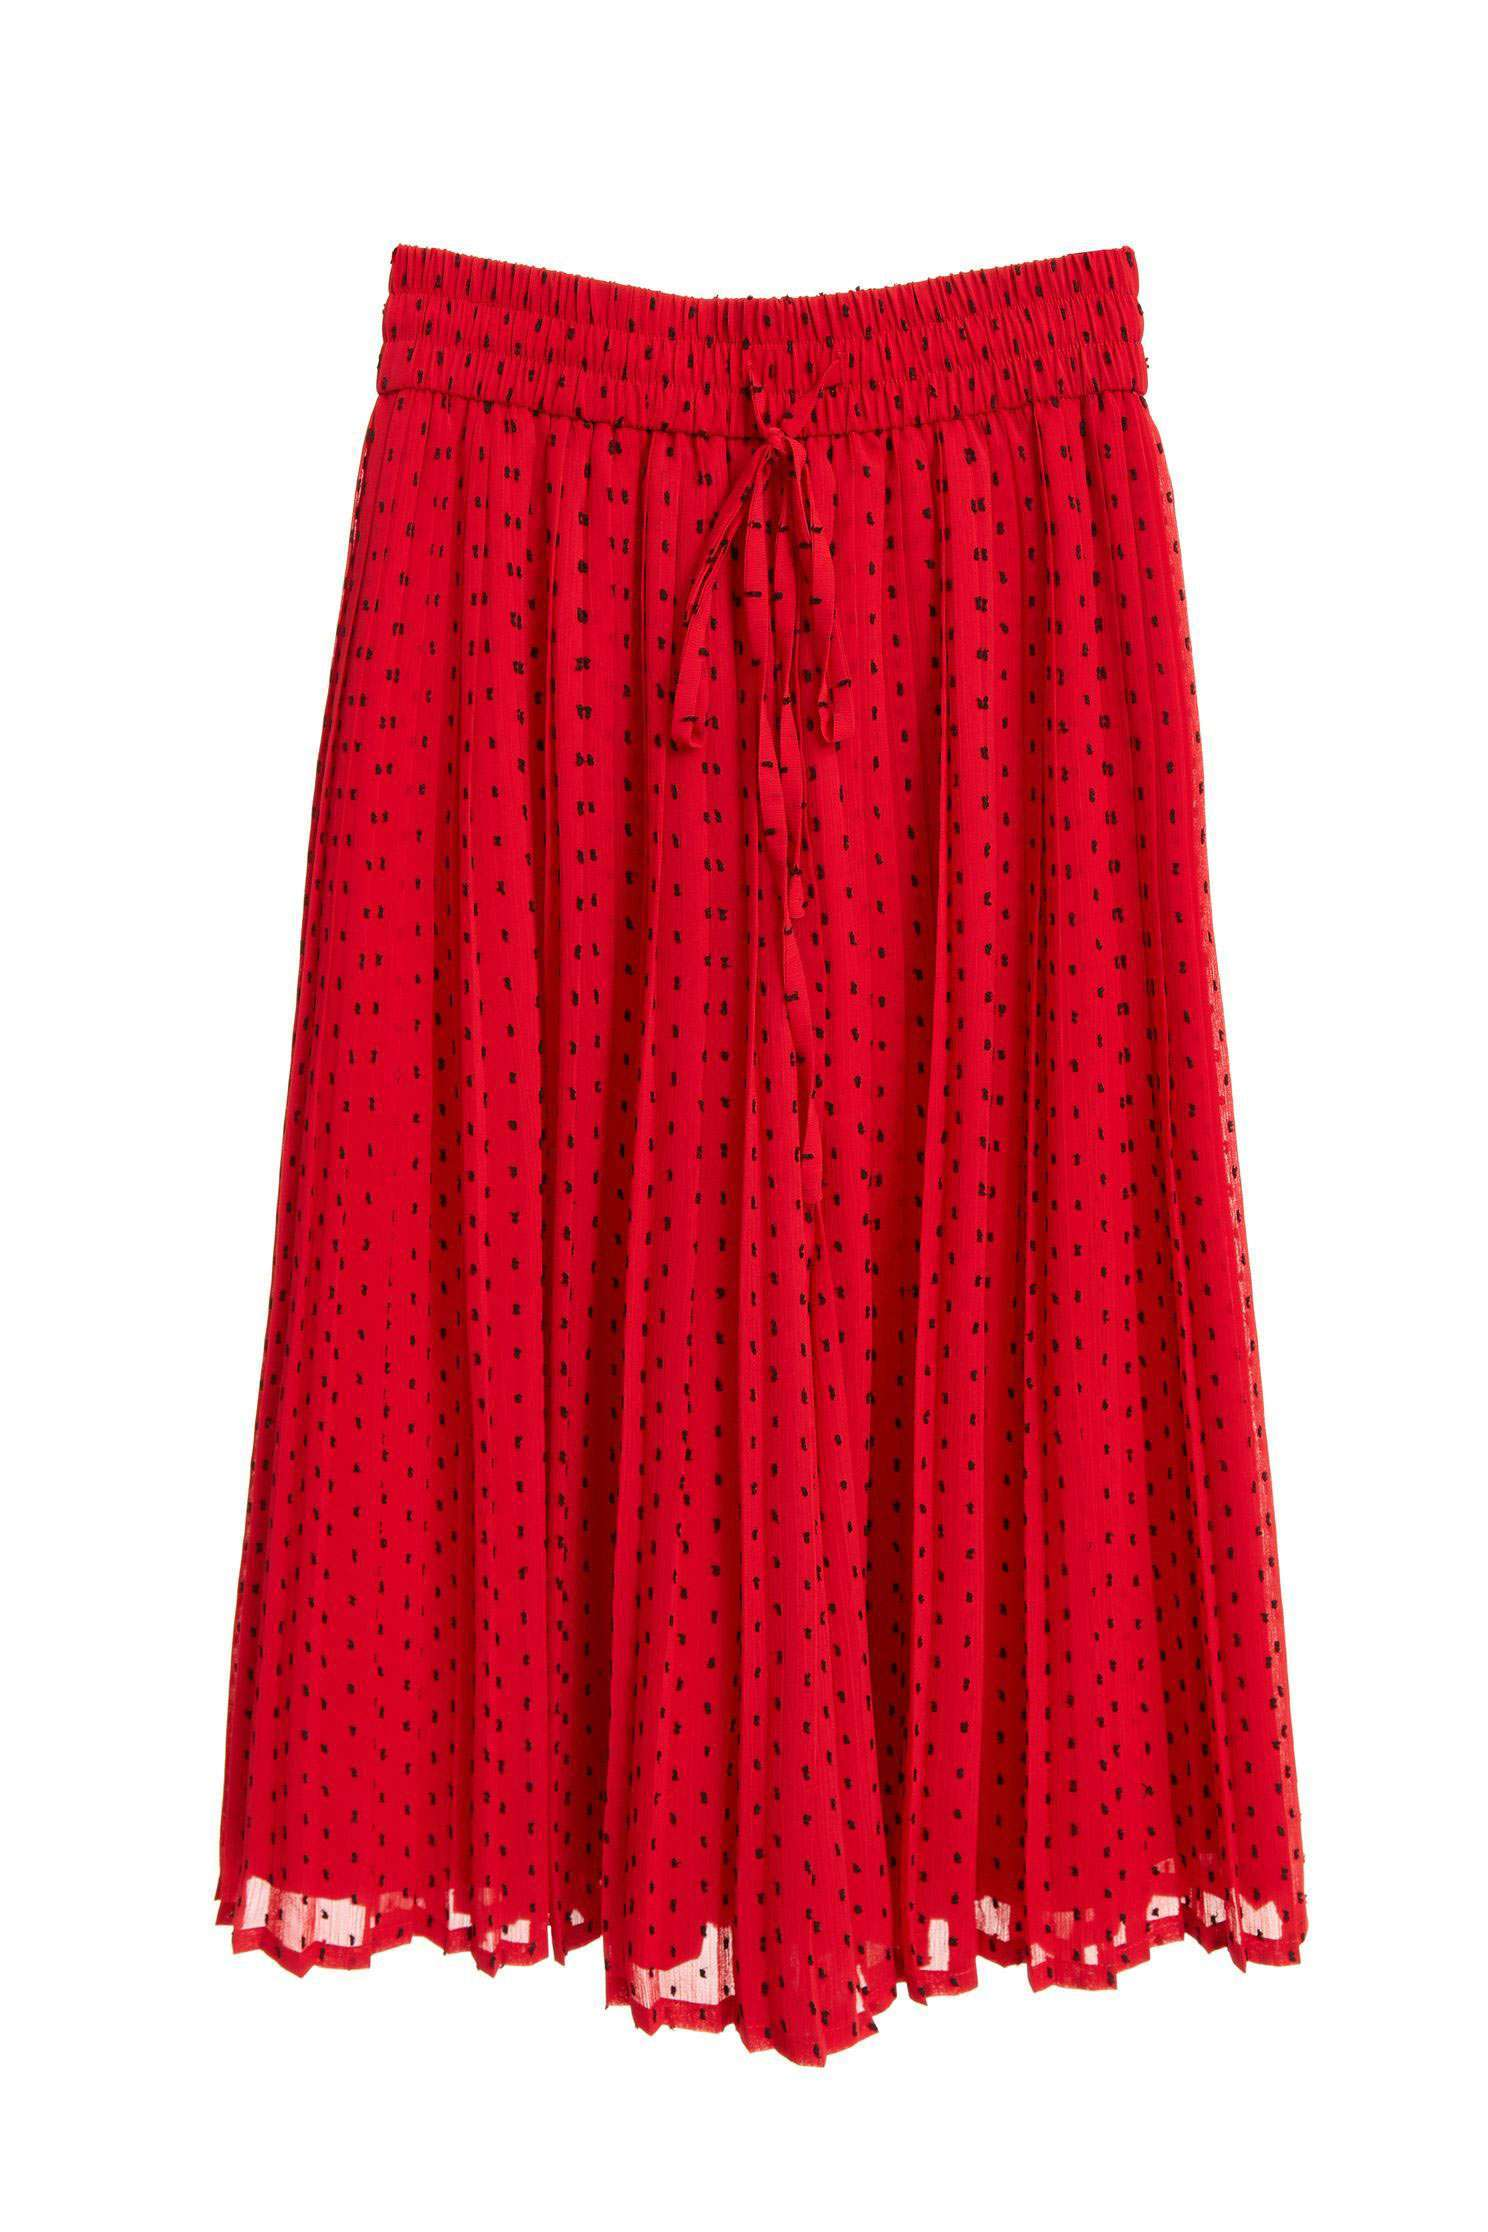 Dot strap hundred pleated skirt,Culottes Pants,Pants,Culottes